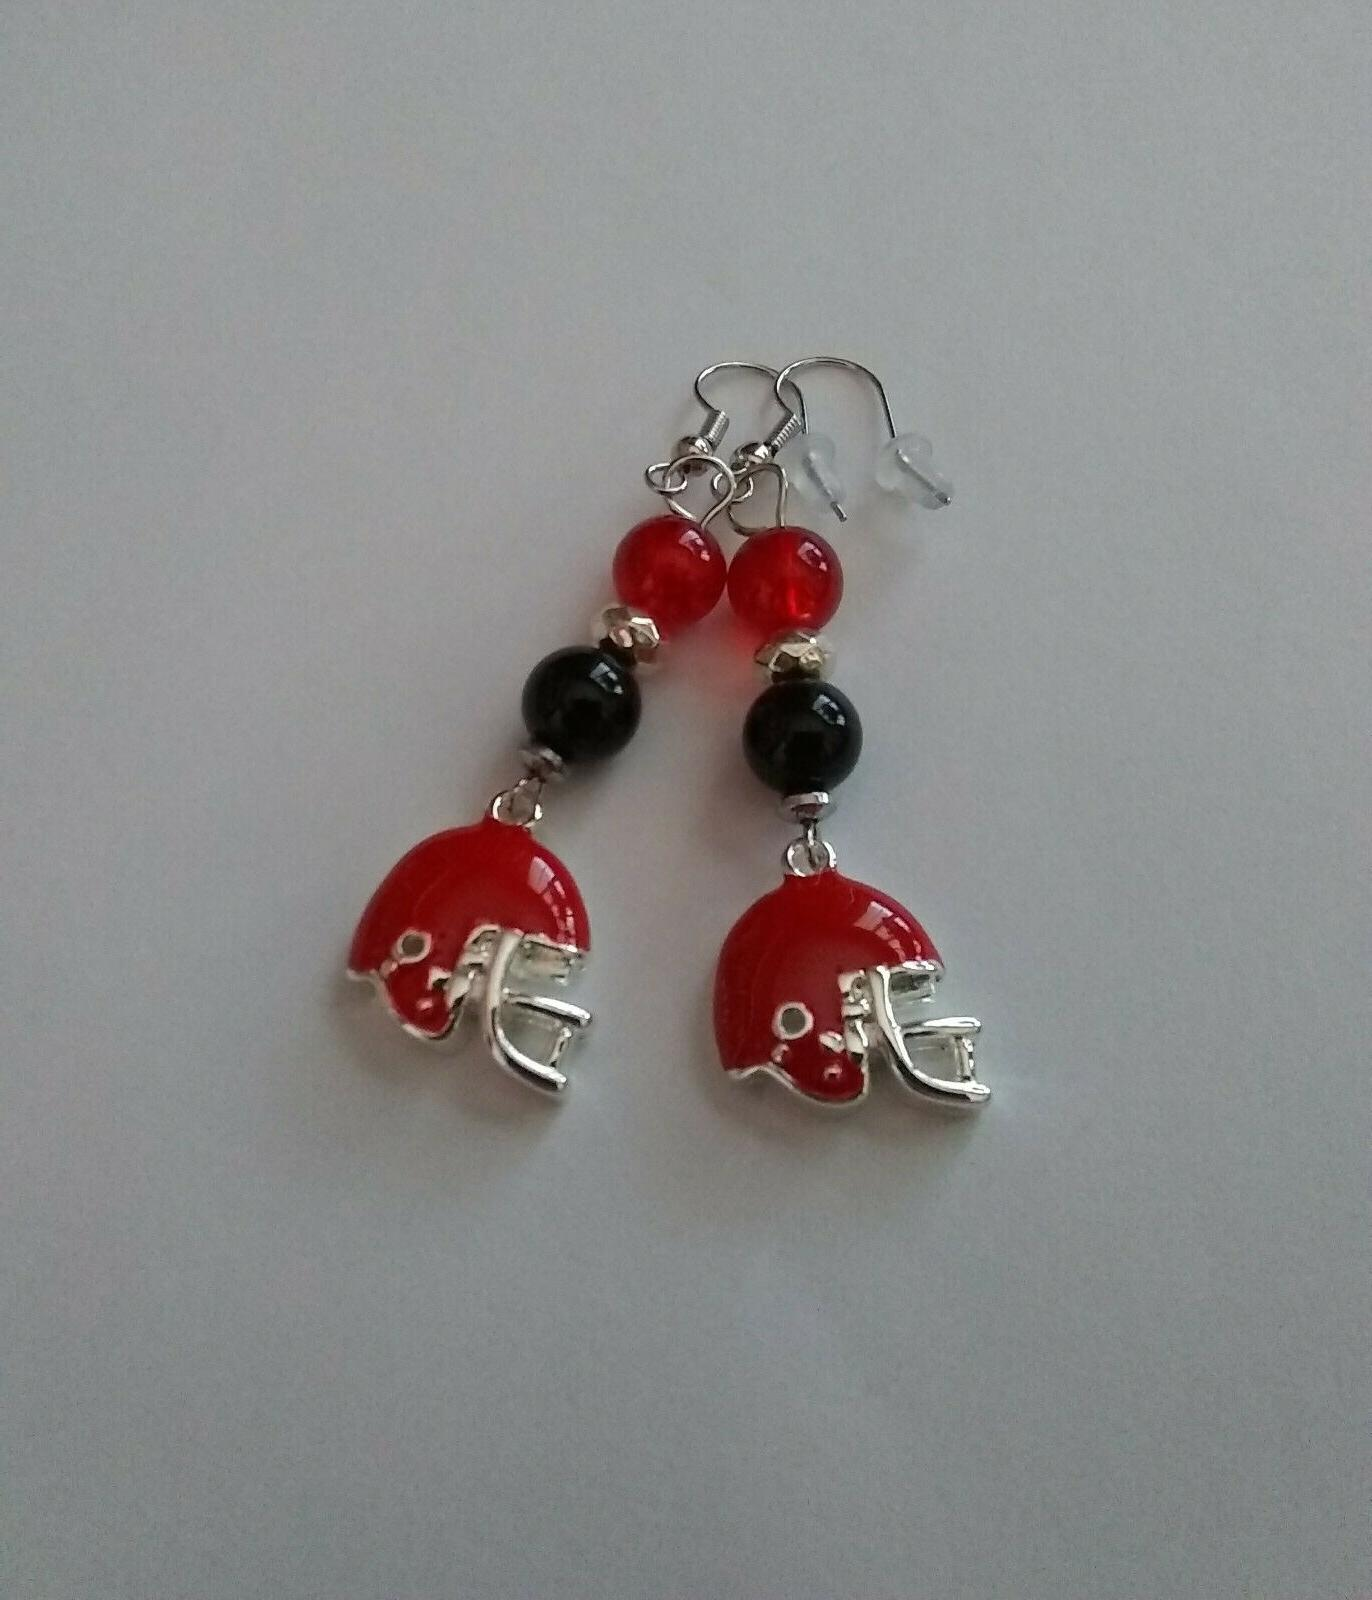 arizona cardinals earrings cardinals earrings nfl earrings